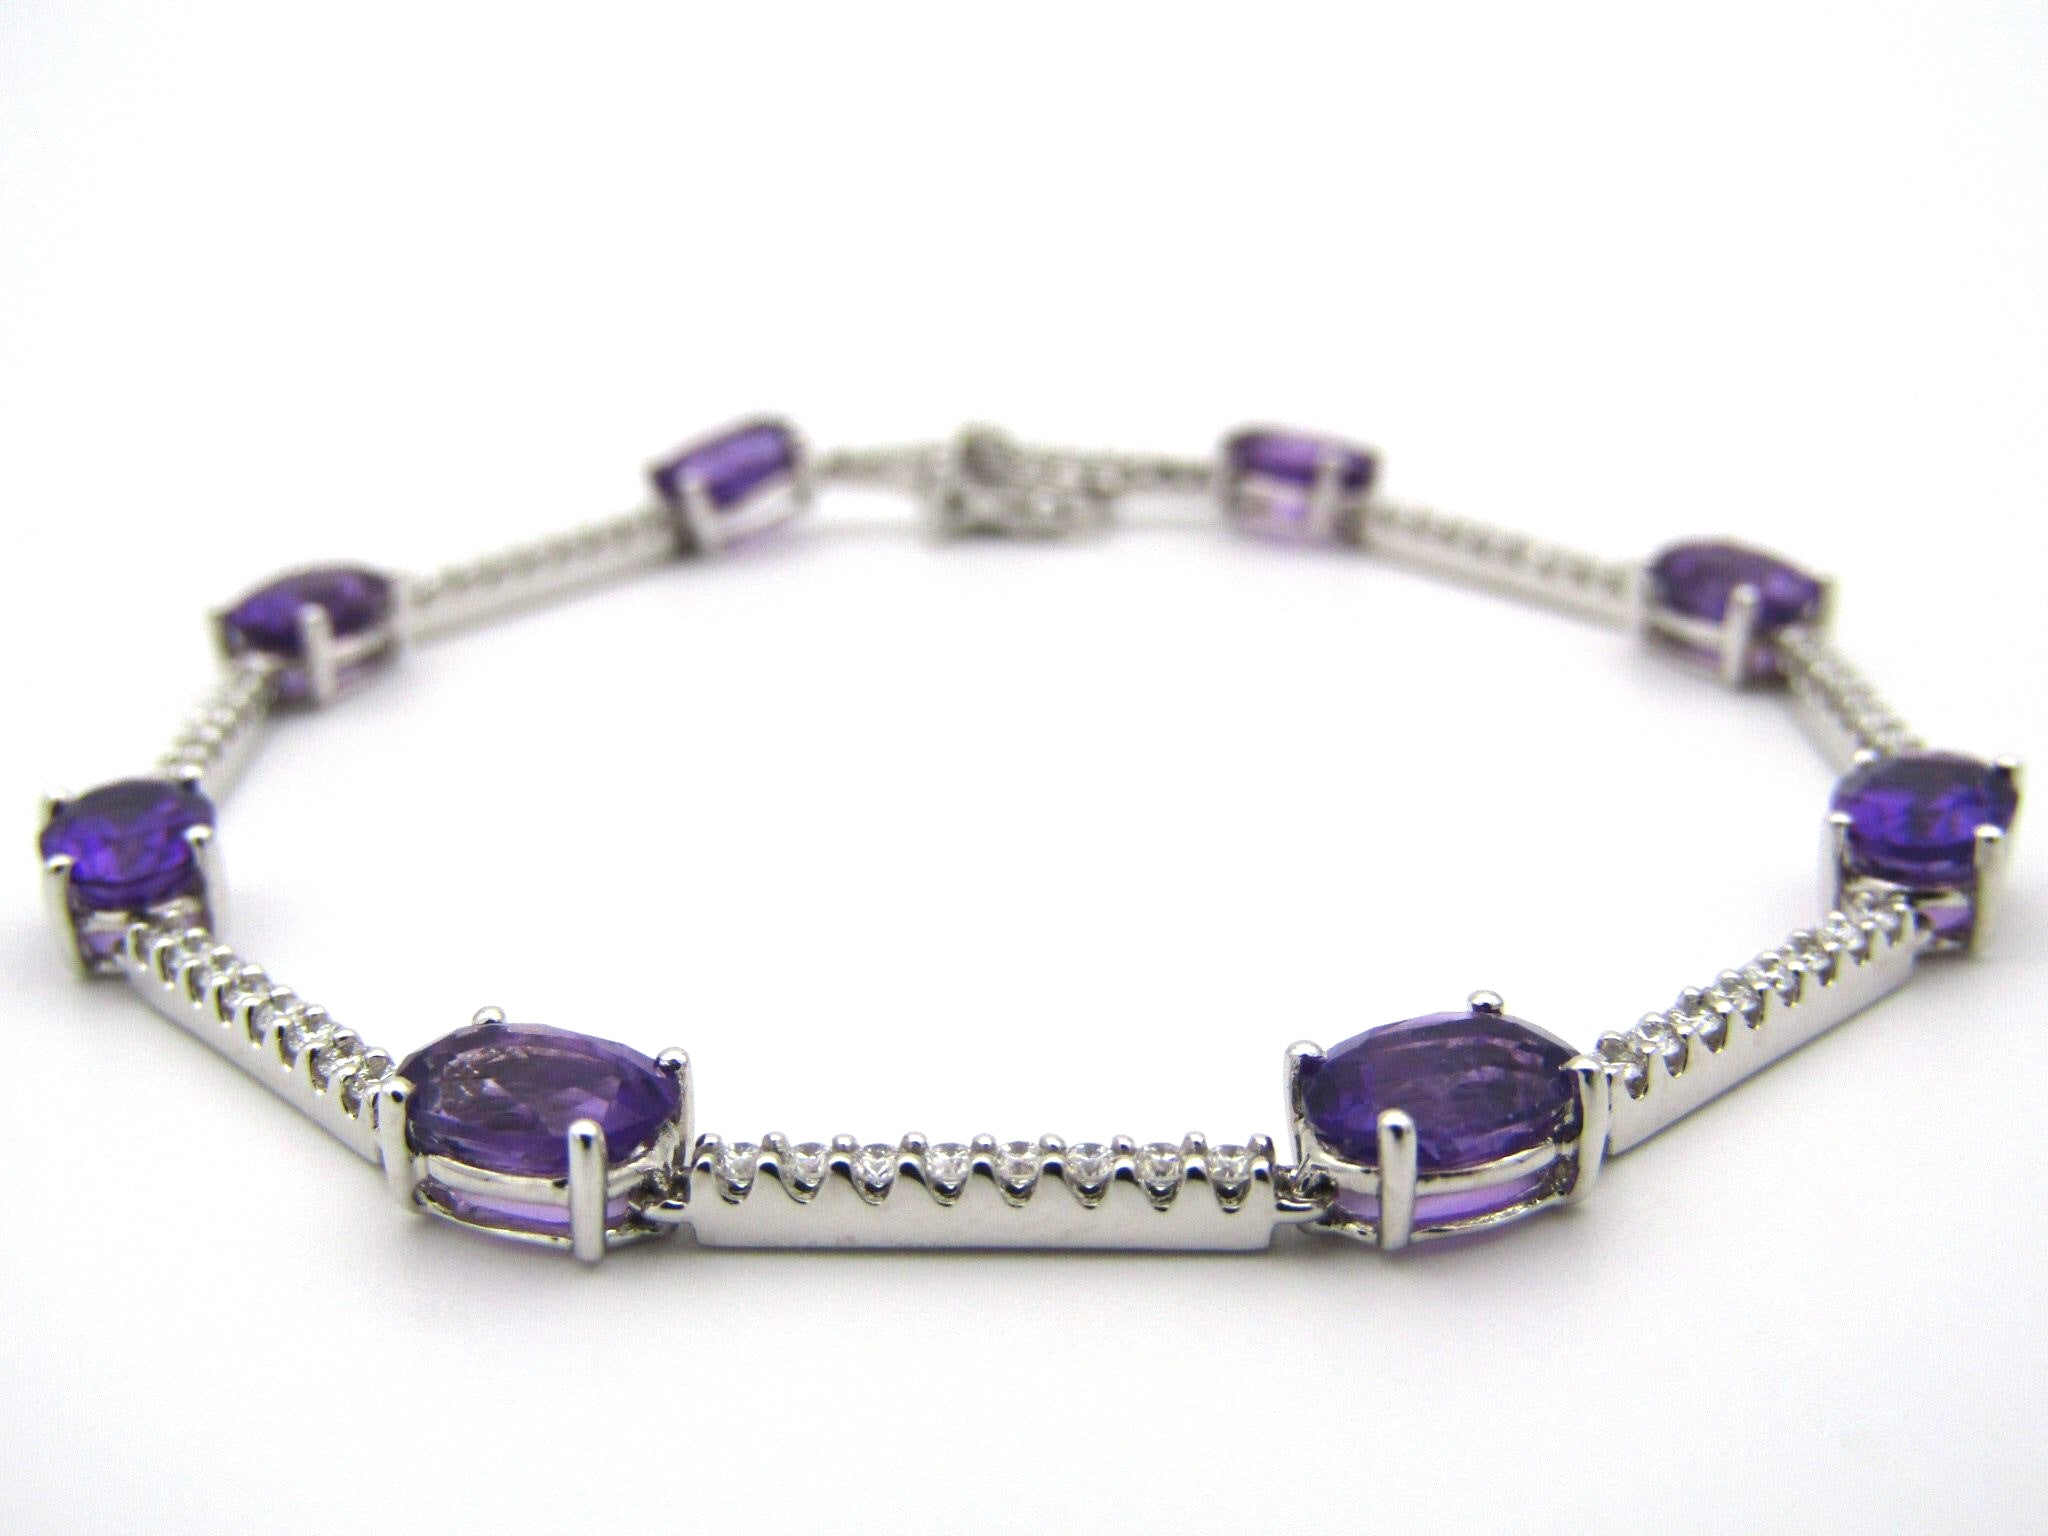 18kt gold amethyst and diamond bracelet.